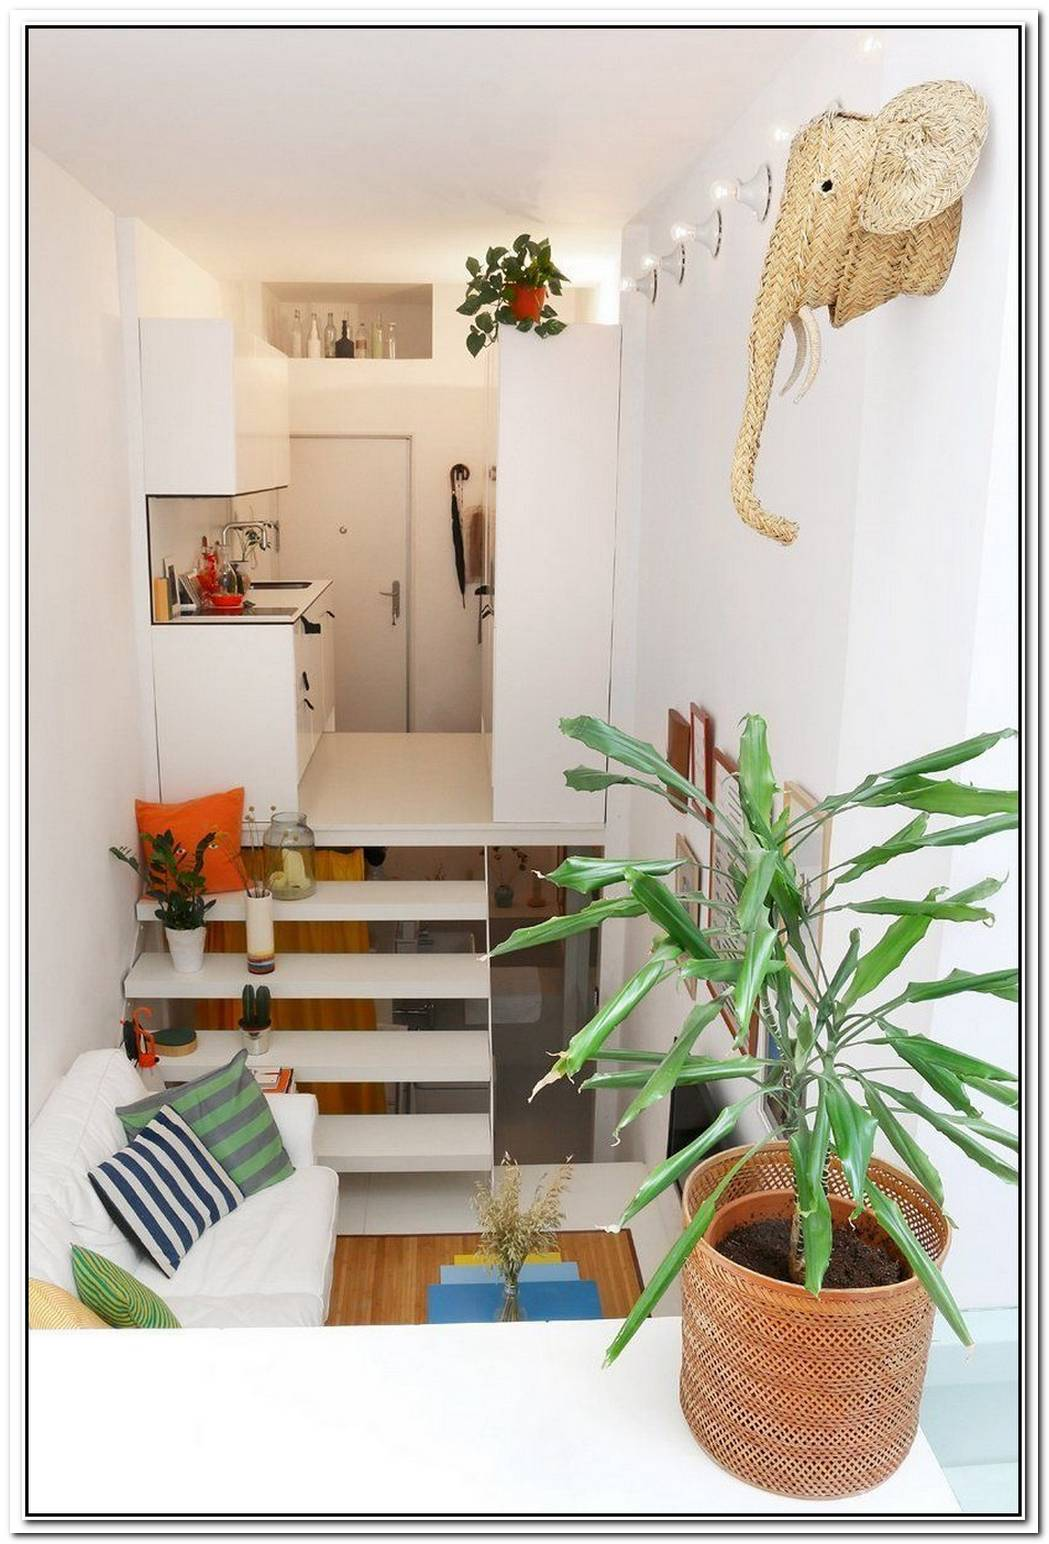 Home Sweet Home In 21 Square Meters Of Space In Madrid